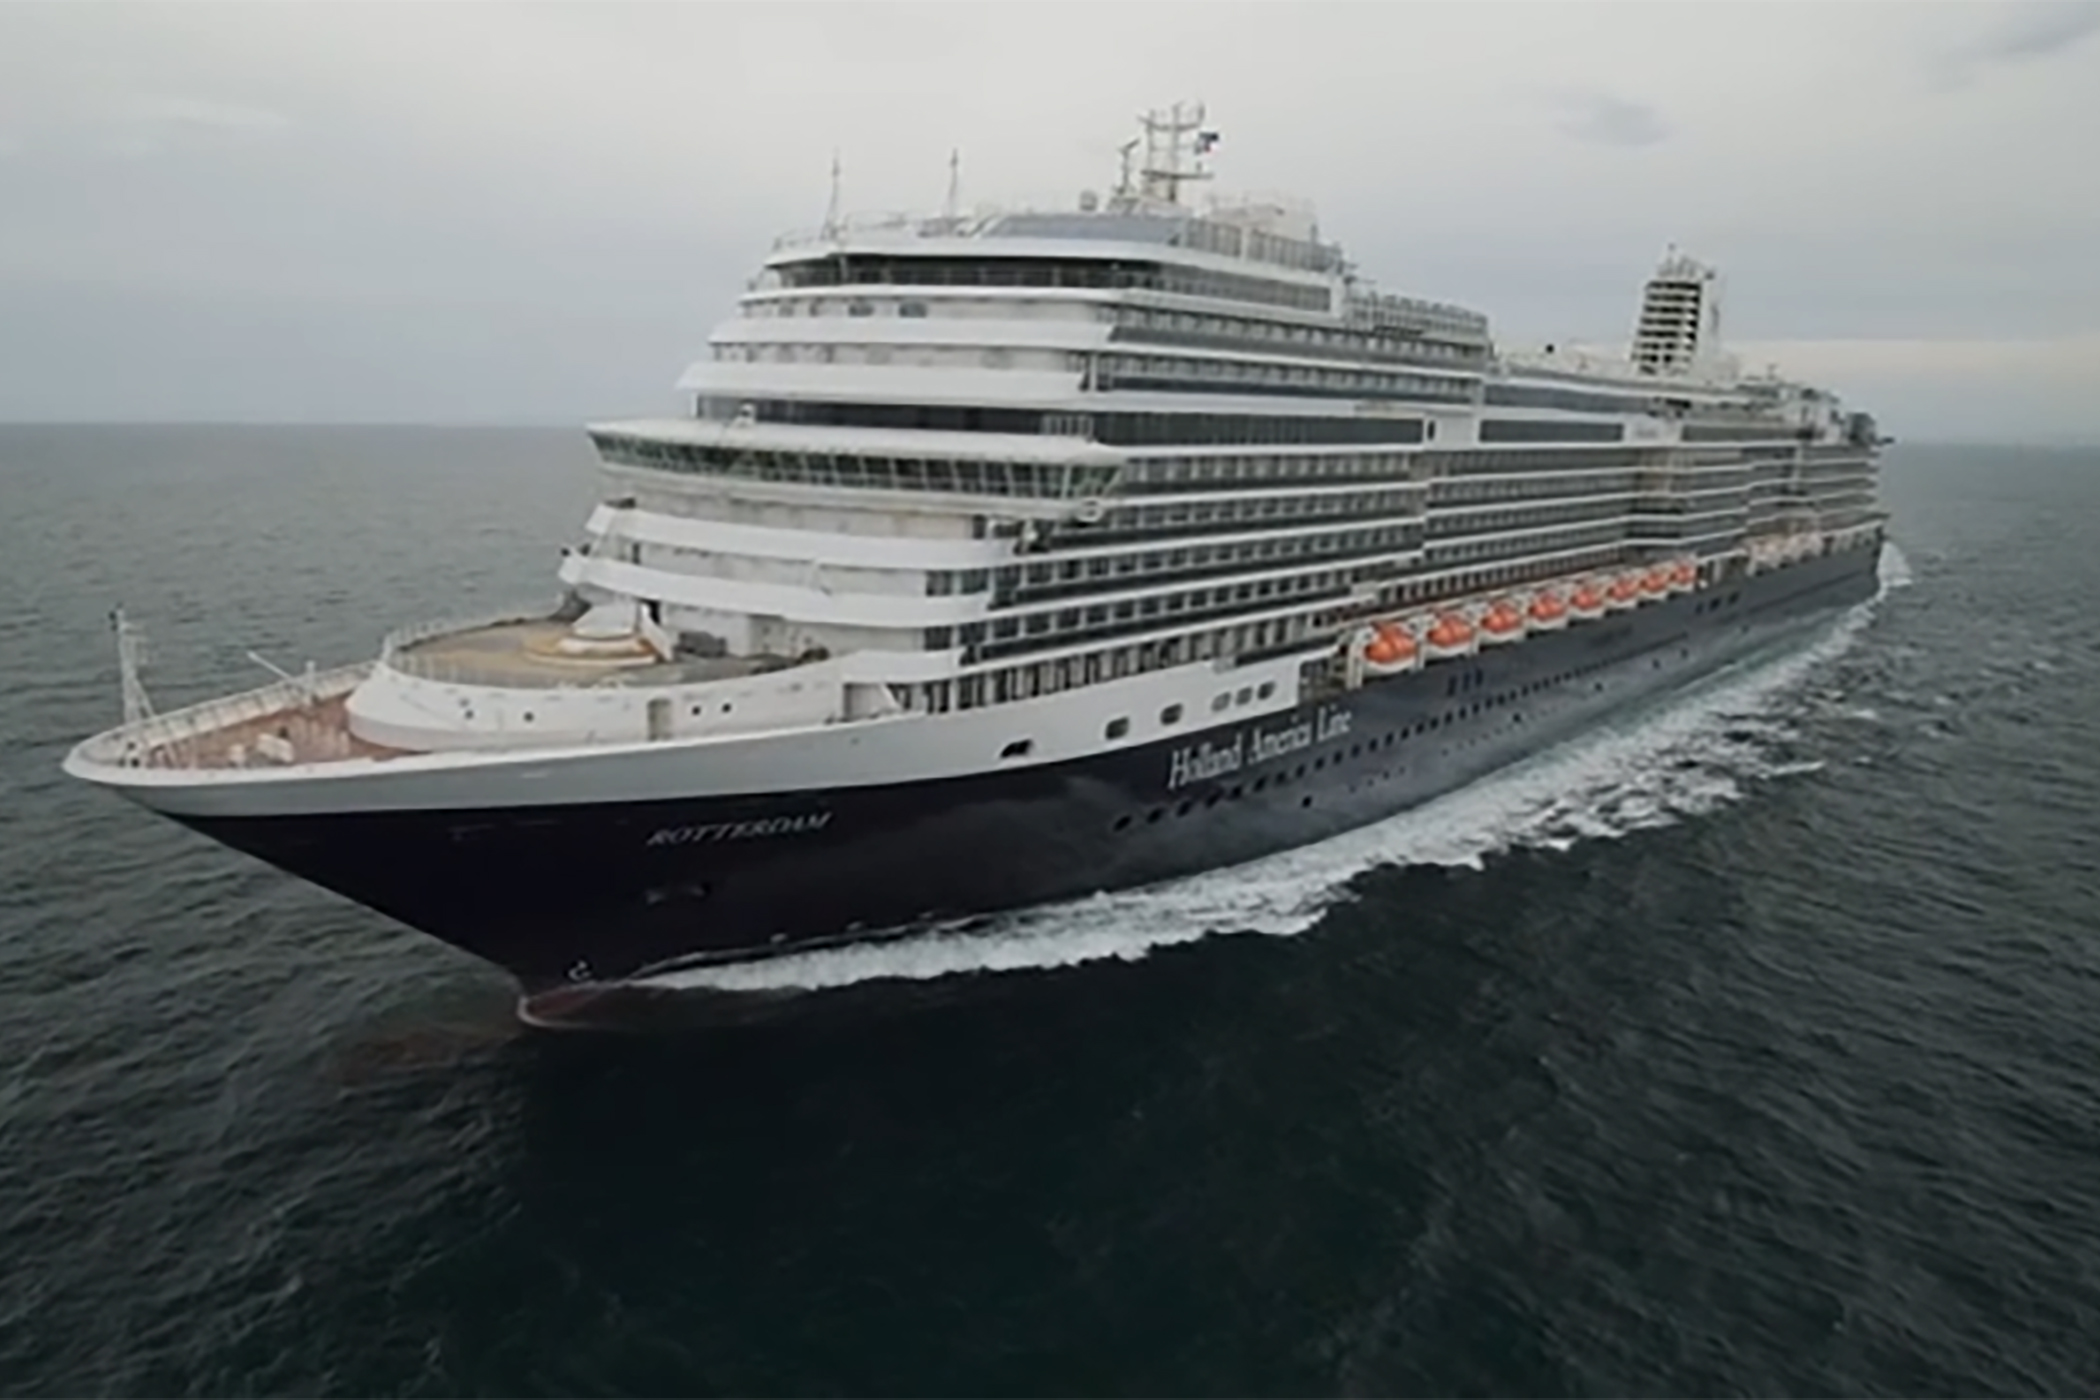 Holland America Line's Rotterdam Sets Sail with World-Class Floating Art Gallery Valued at Over $4.1 Million